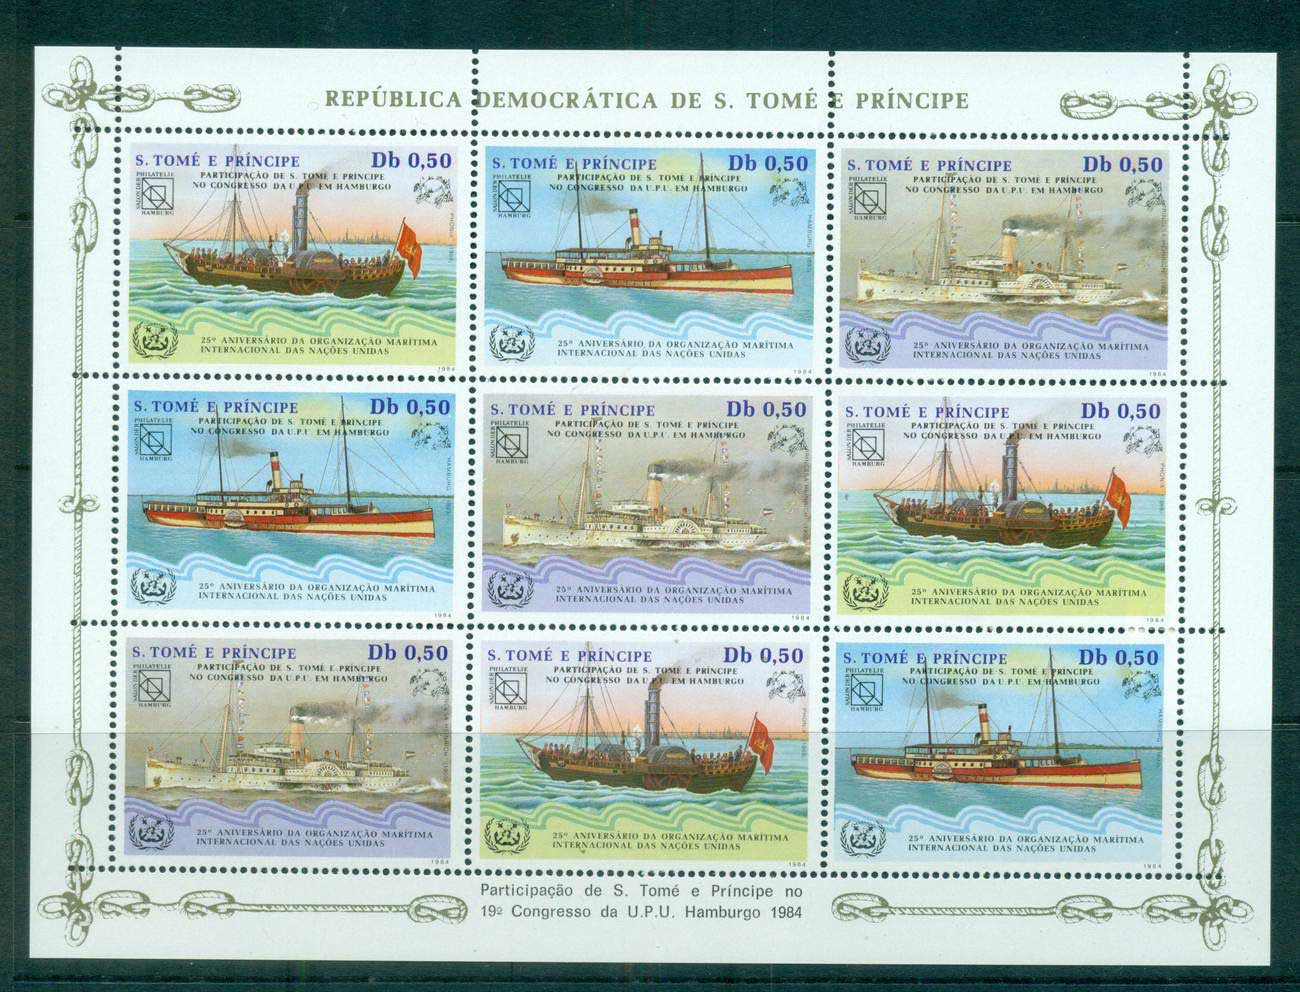 Sao Tome et Principe 1984 UPU Congress Hamburg, Str 3 Sheetlet Ships MUH lot59496